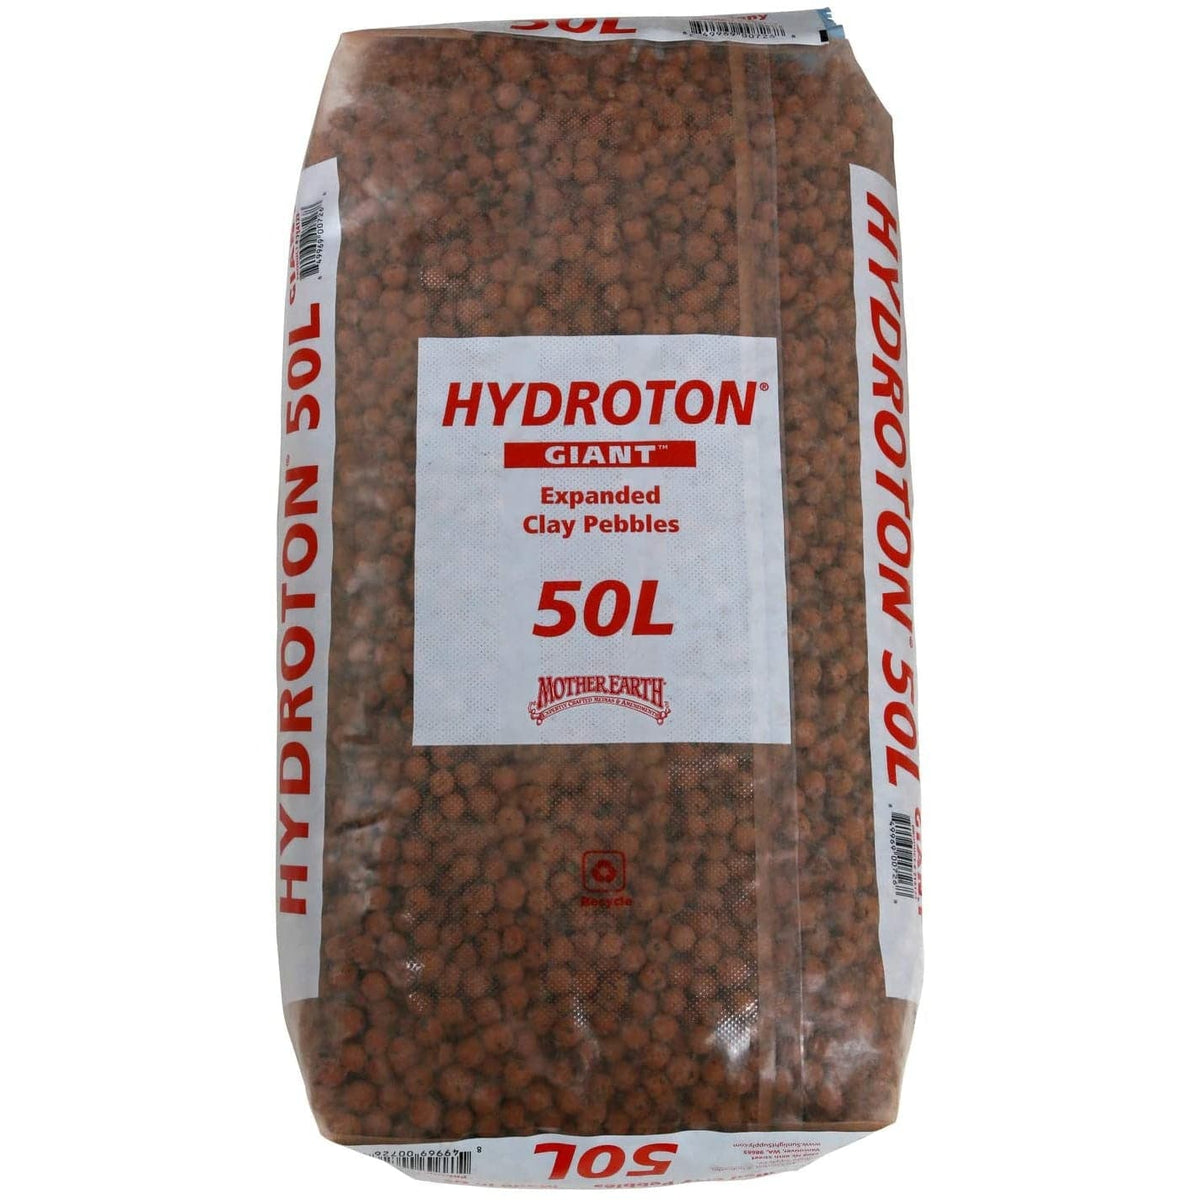 Hydroton Original Expanded Clay Pebbles, 50 Liter, Terra Cotta (Mother Earth)